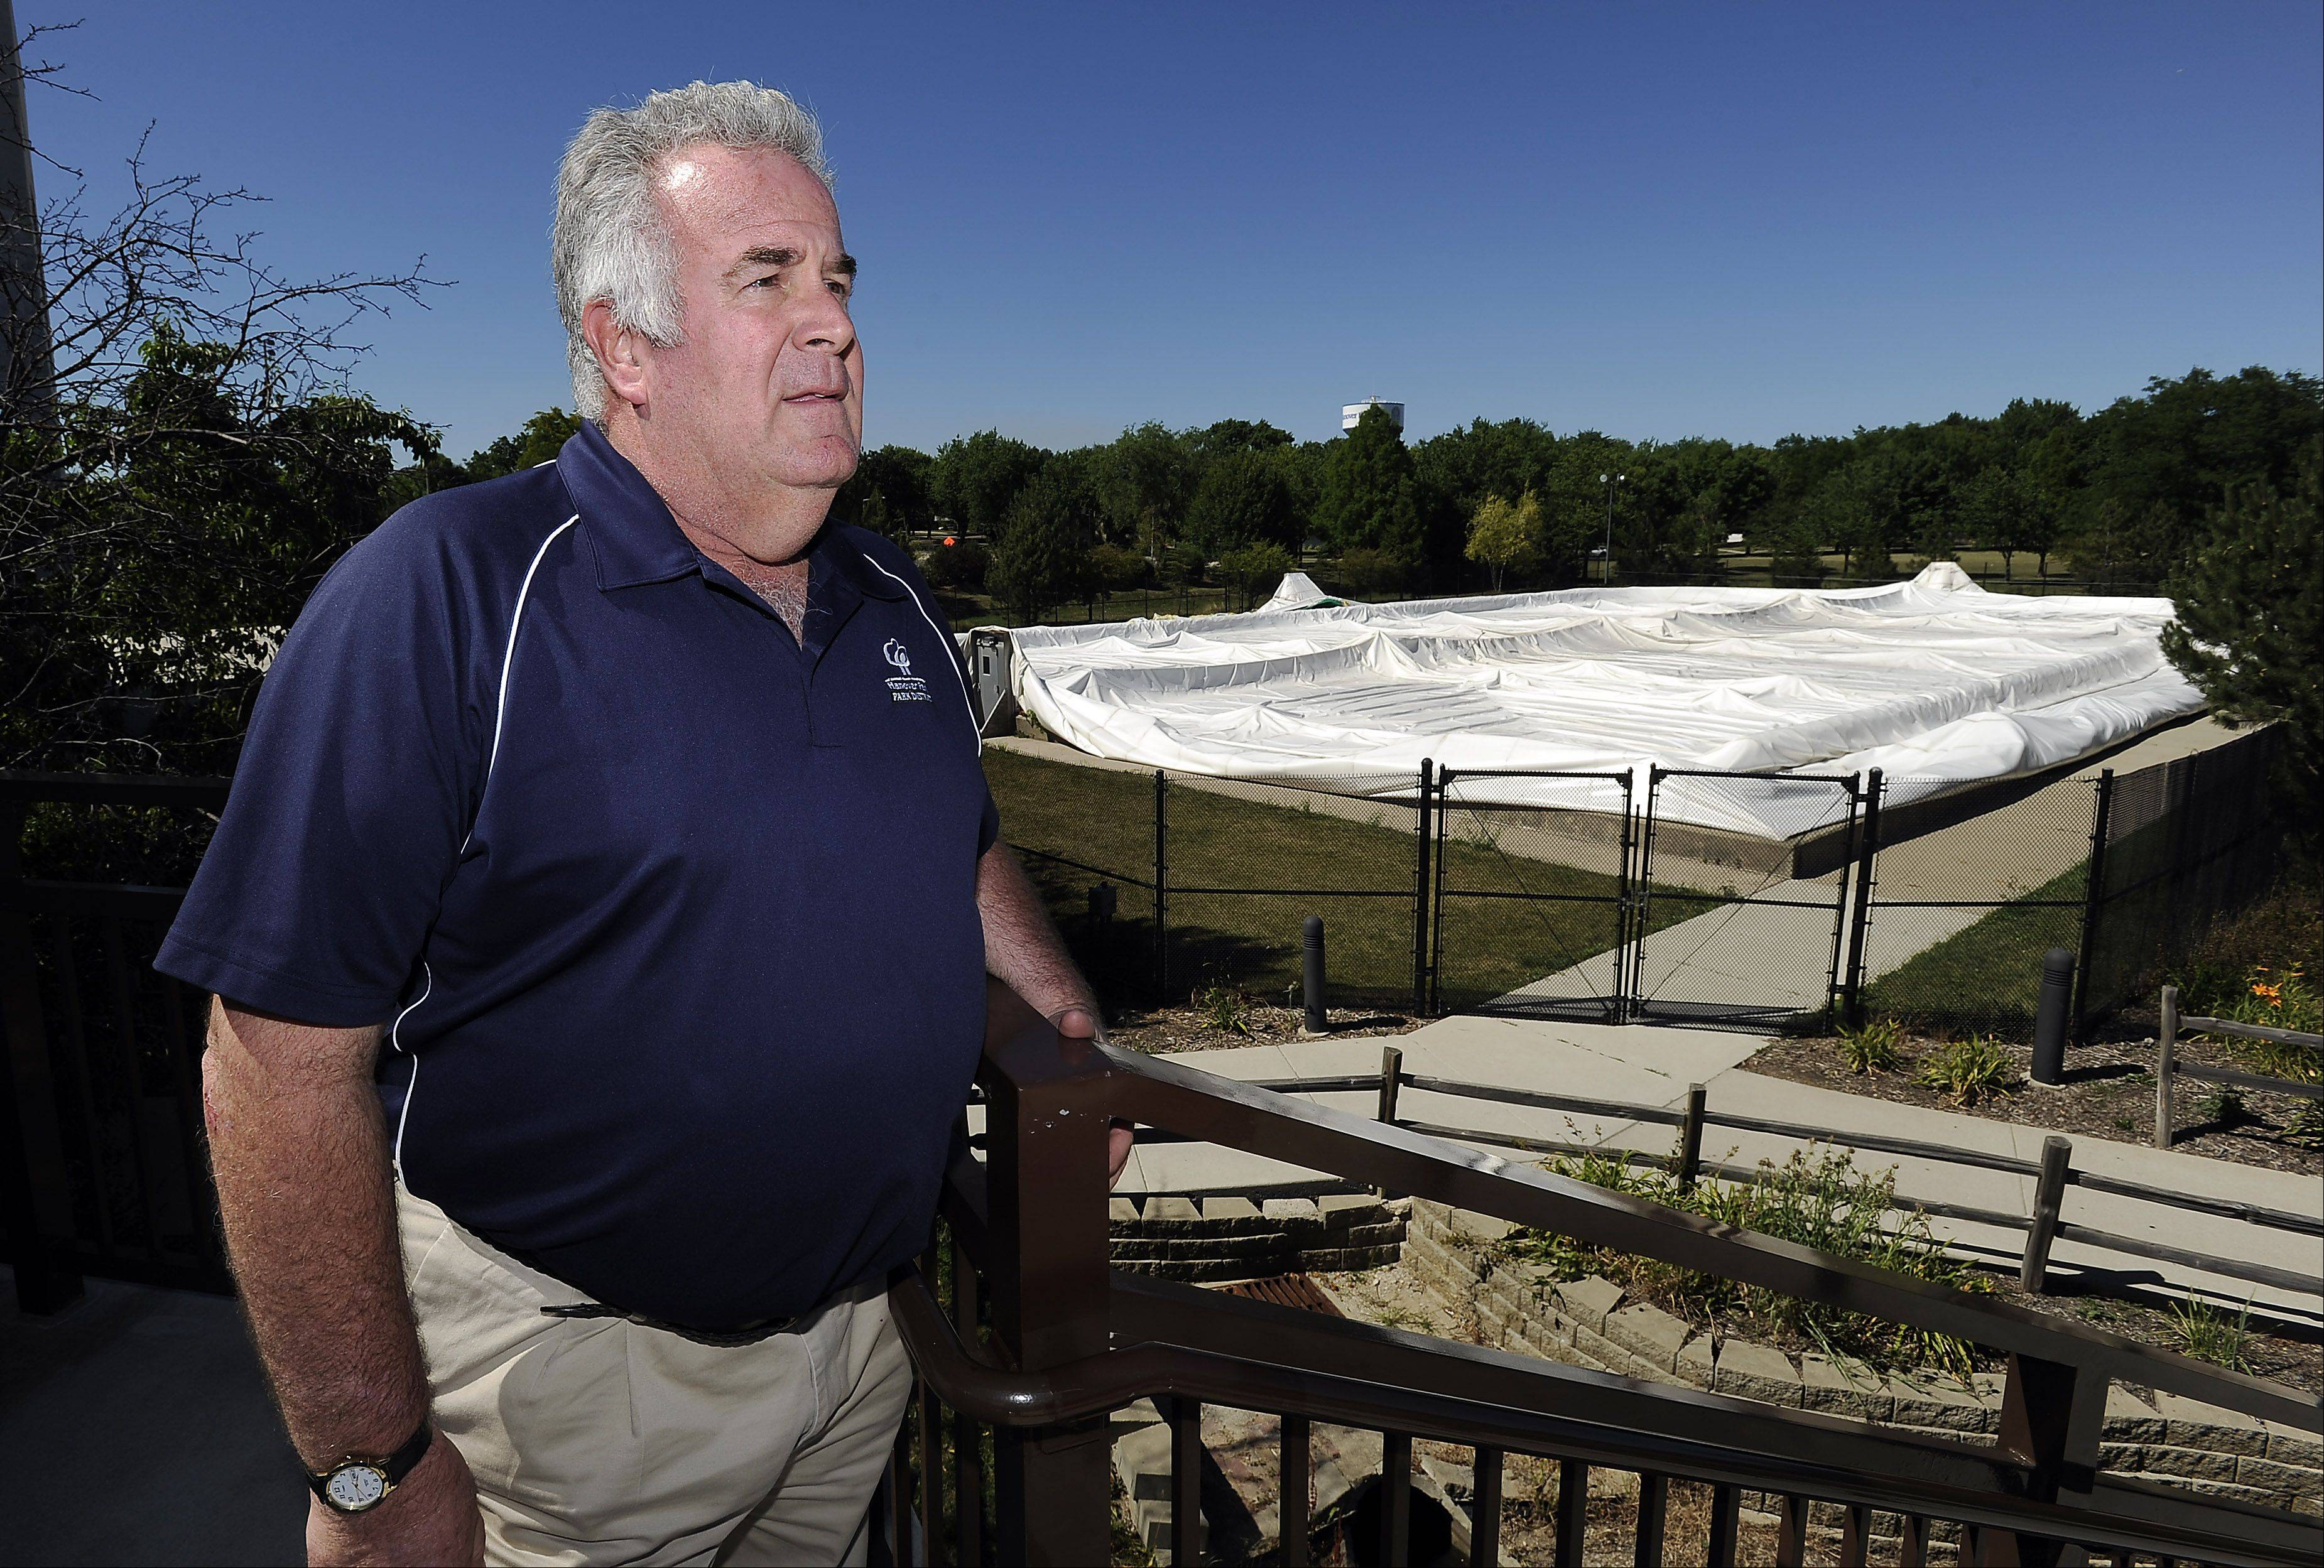 Hanover Park Park District's Bob O'Brien, superintendent of parks and planning, looks over the inflatable tennis dome that collapsed Sunday afternoon. None of the roughly 20 people inside was injured.